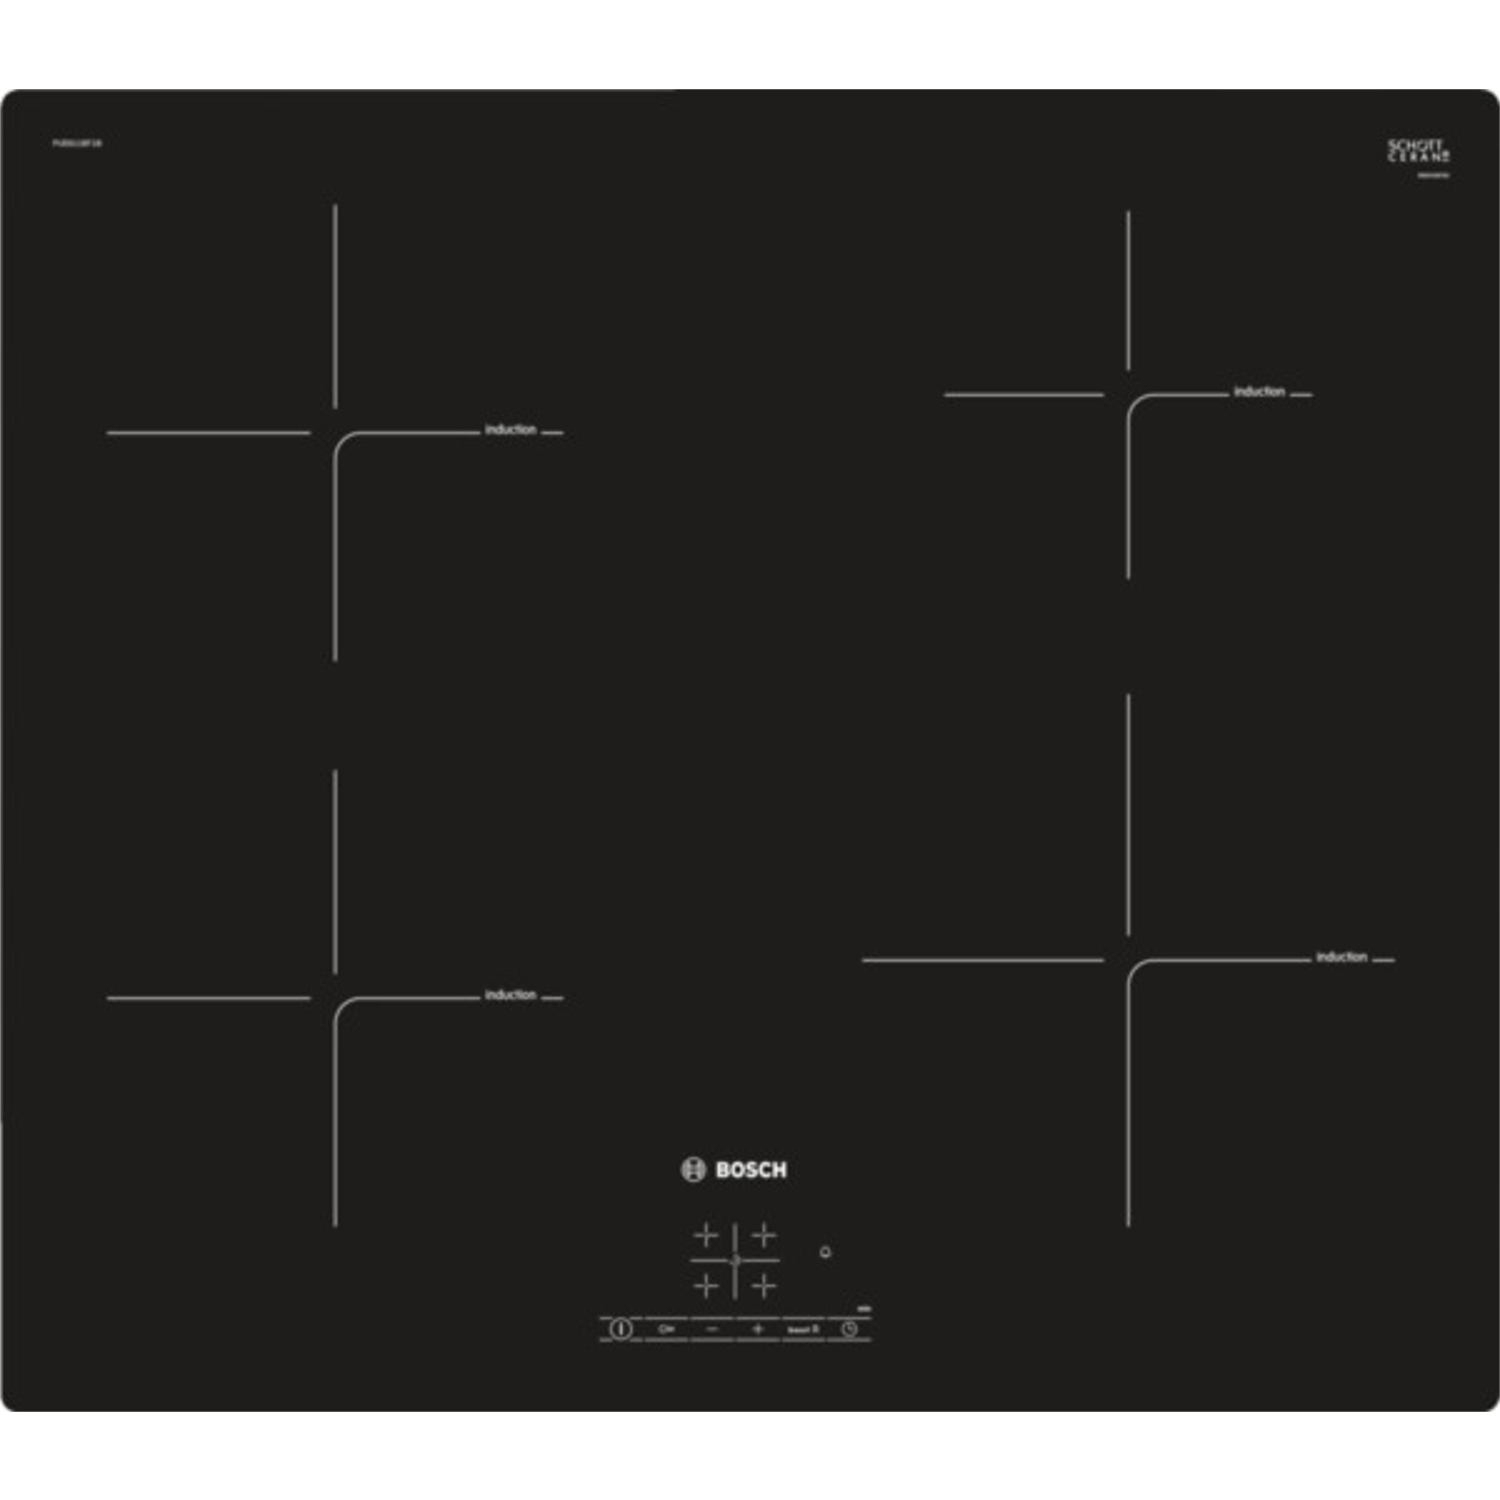 Bosch 60cm Induction Hob - Black - 0